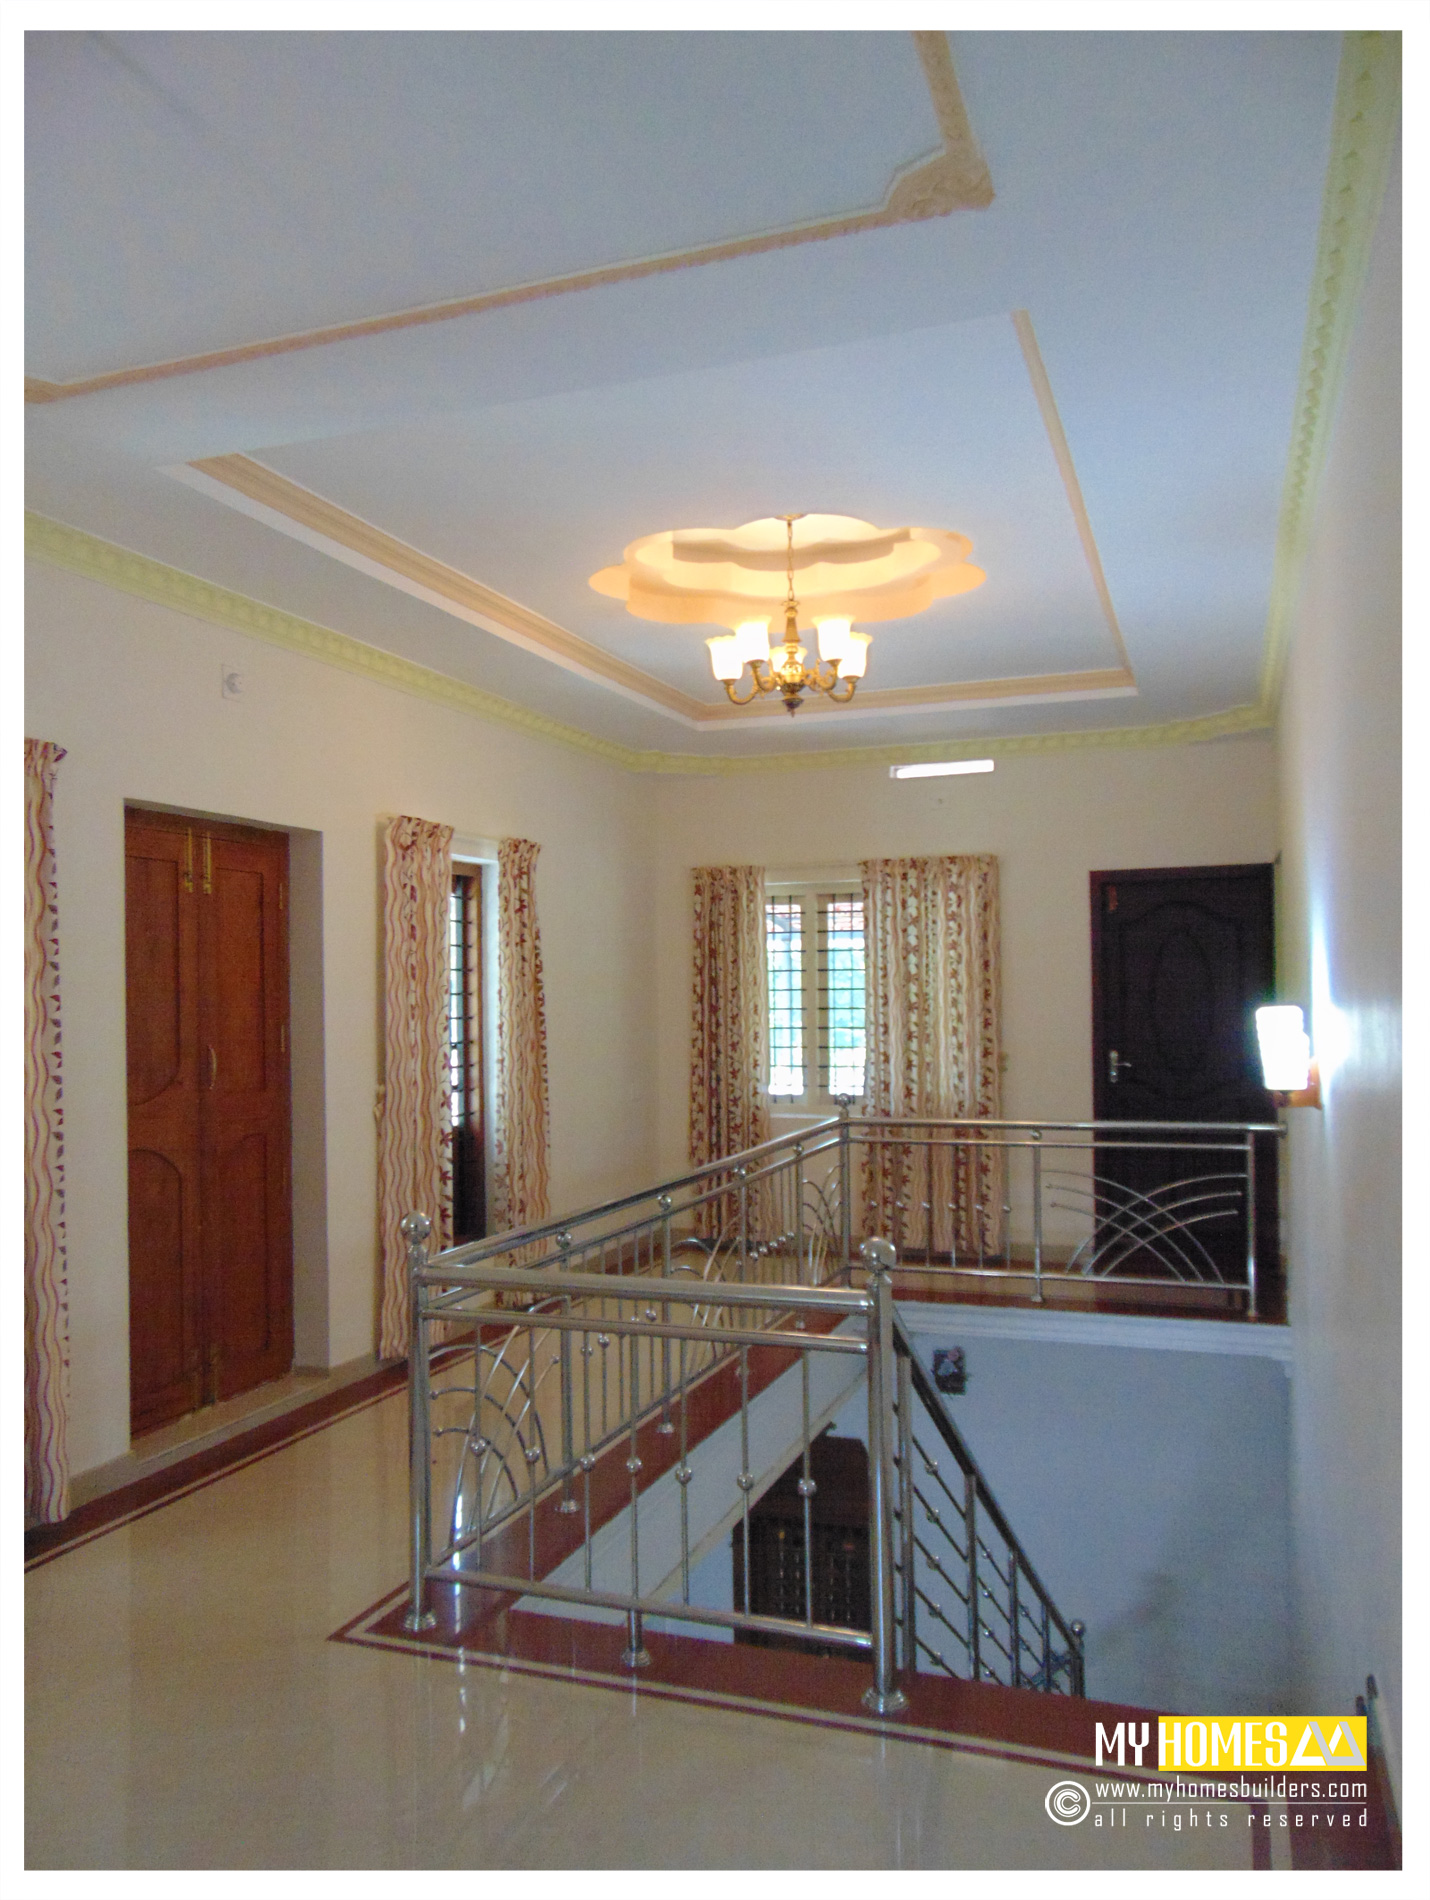 Top quality staircase design in kerala from my homes thrissur Low cost interior design ideas india